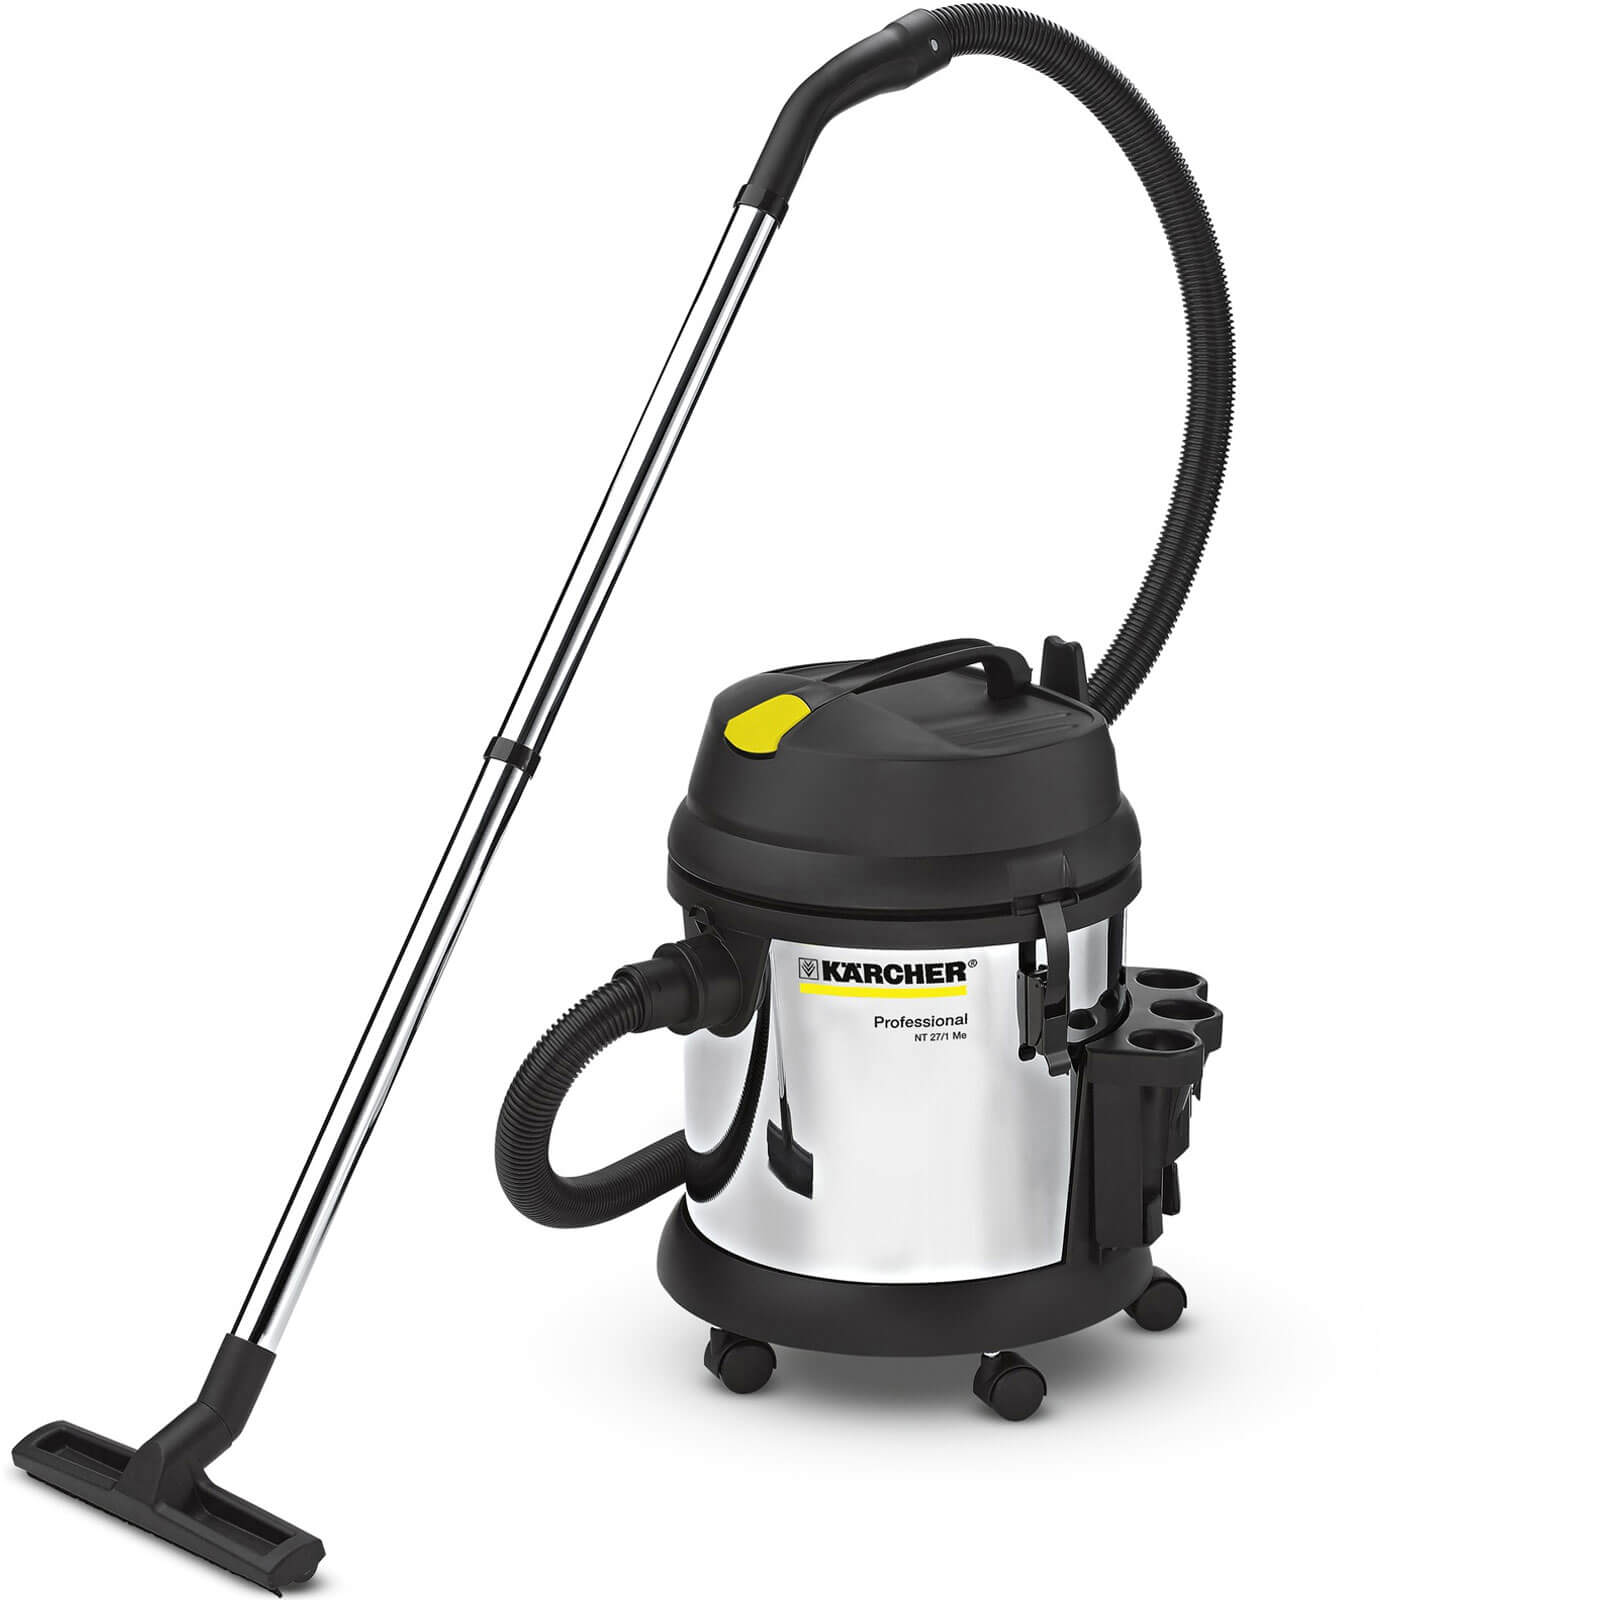 Karcher NT 27/1 ME Metal Wet & Dry Commercial Vacuum Cleaner 27 Litre Tank 1380w 240v